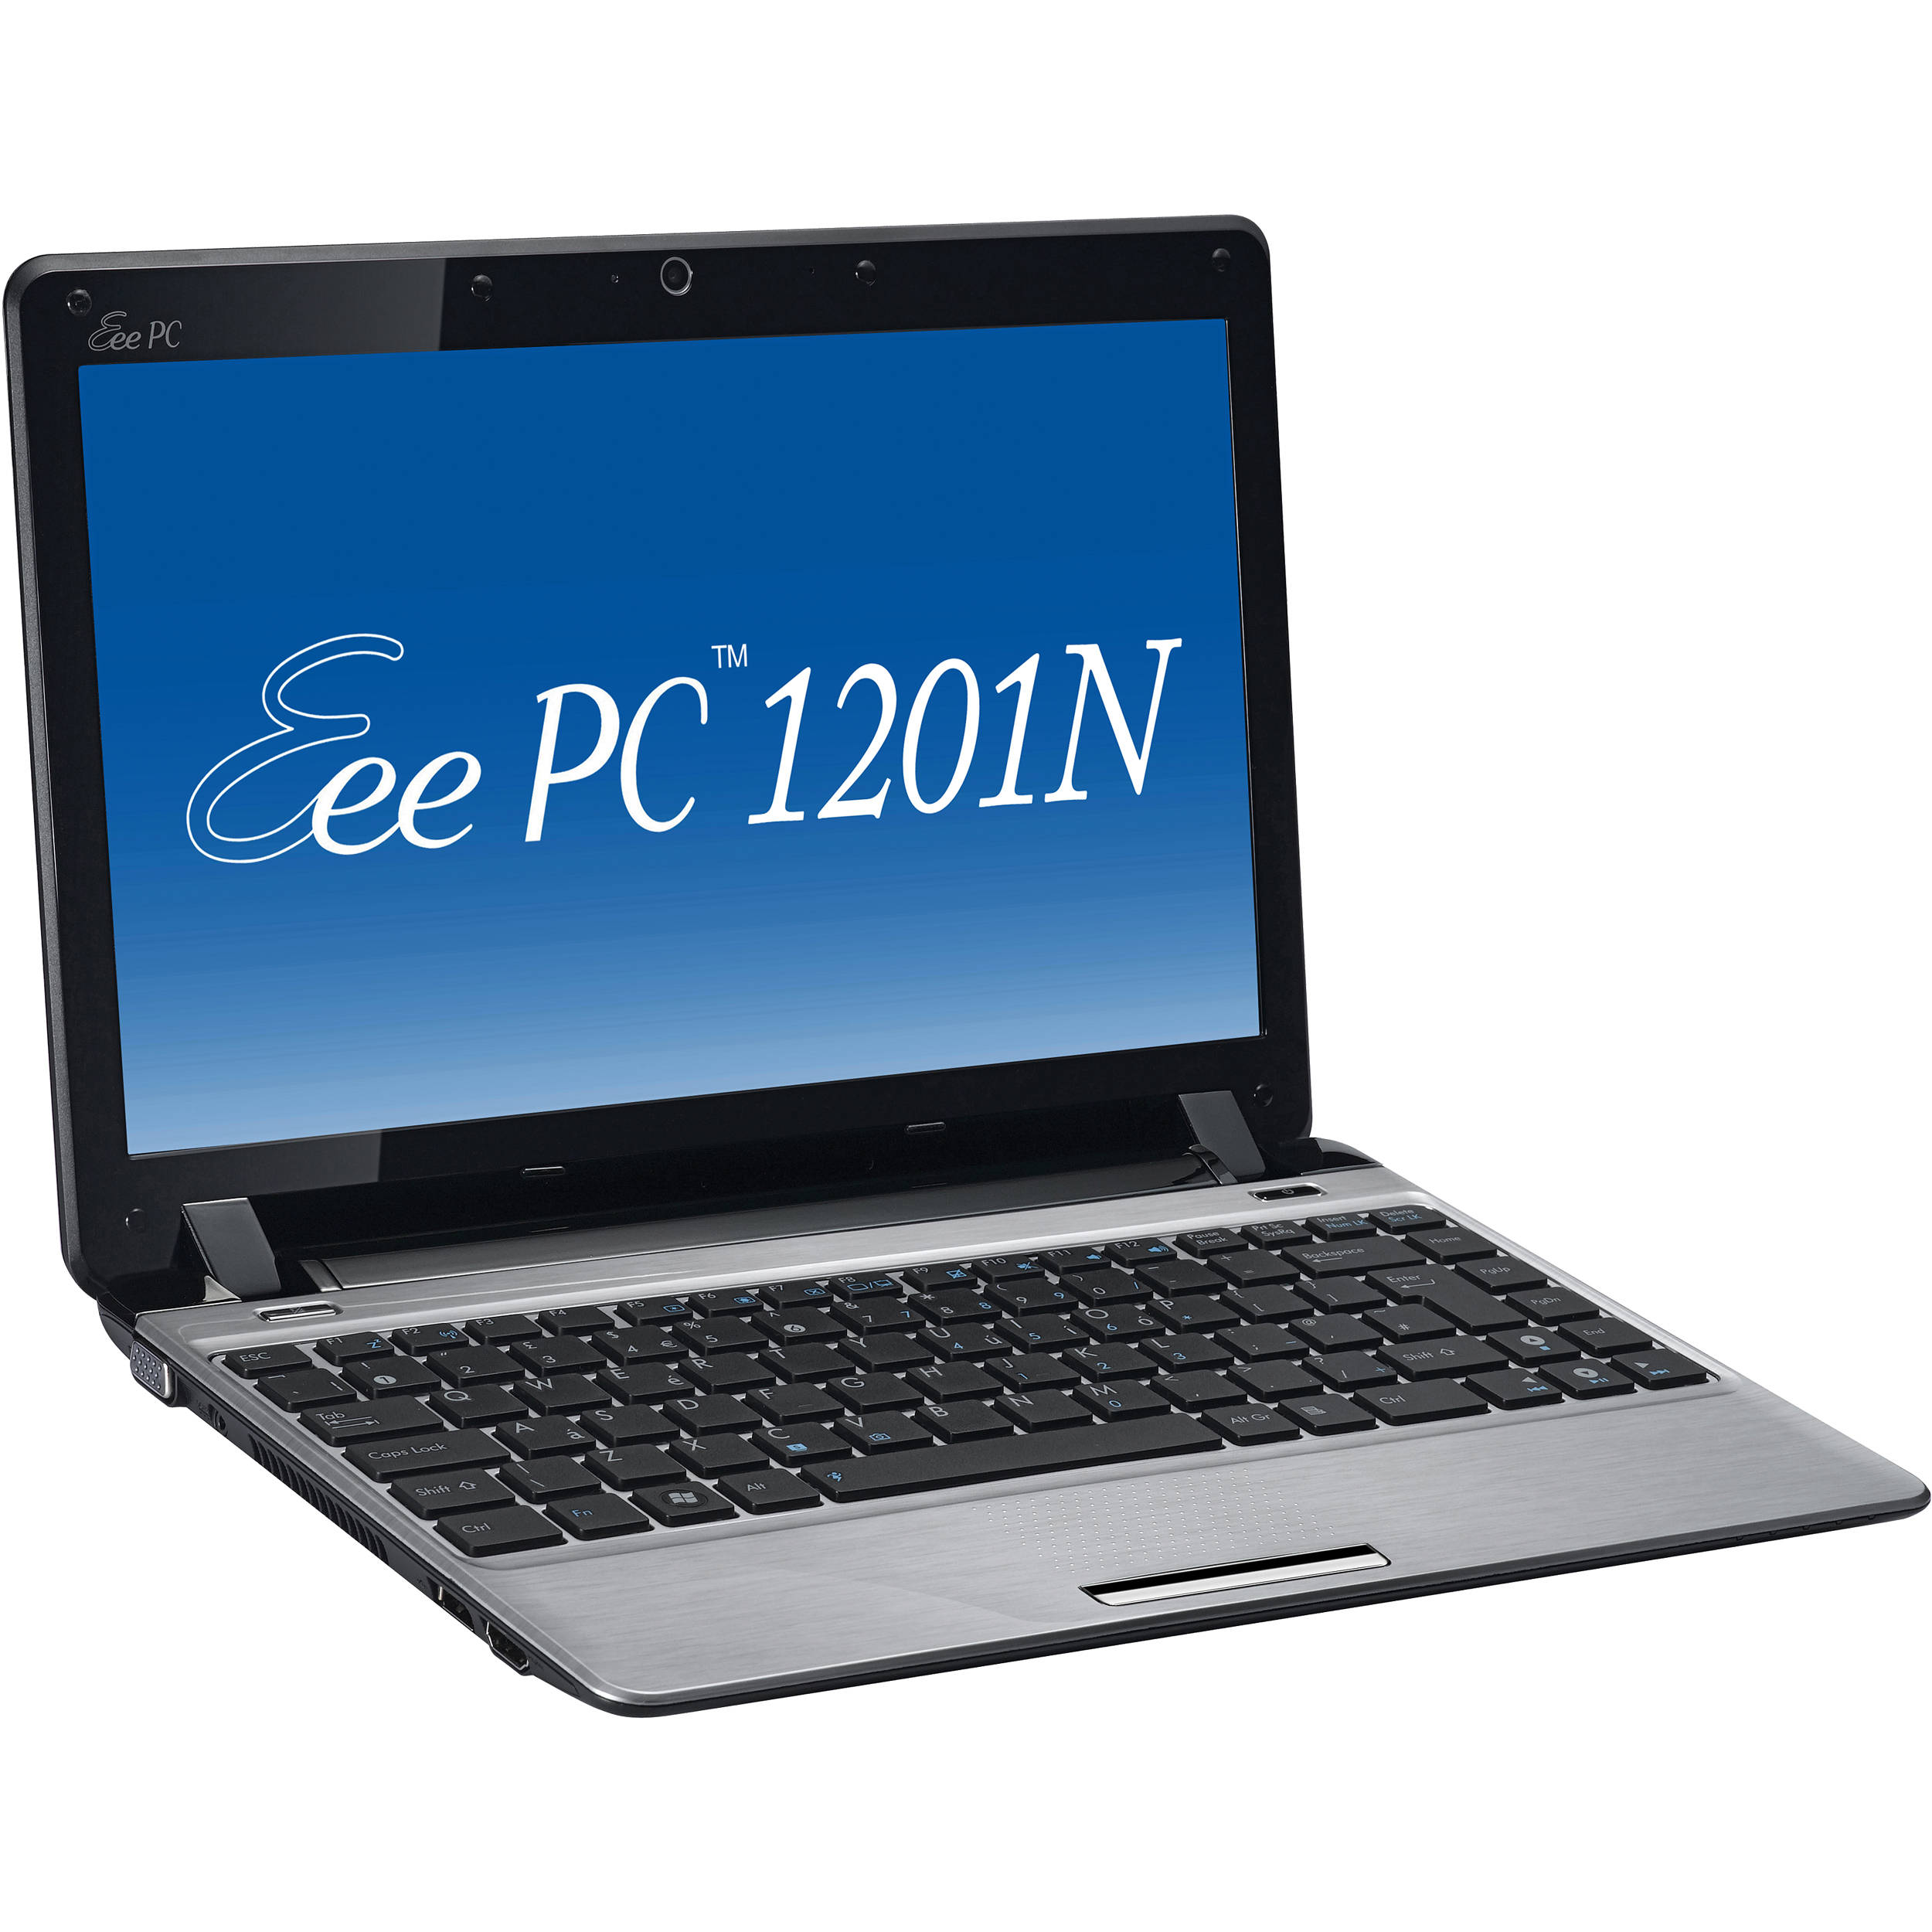 EEE PC 1201N BLUETOOTH DRIVER FOR MAC DOWNLOAD